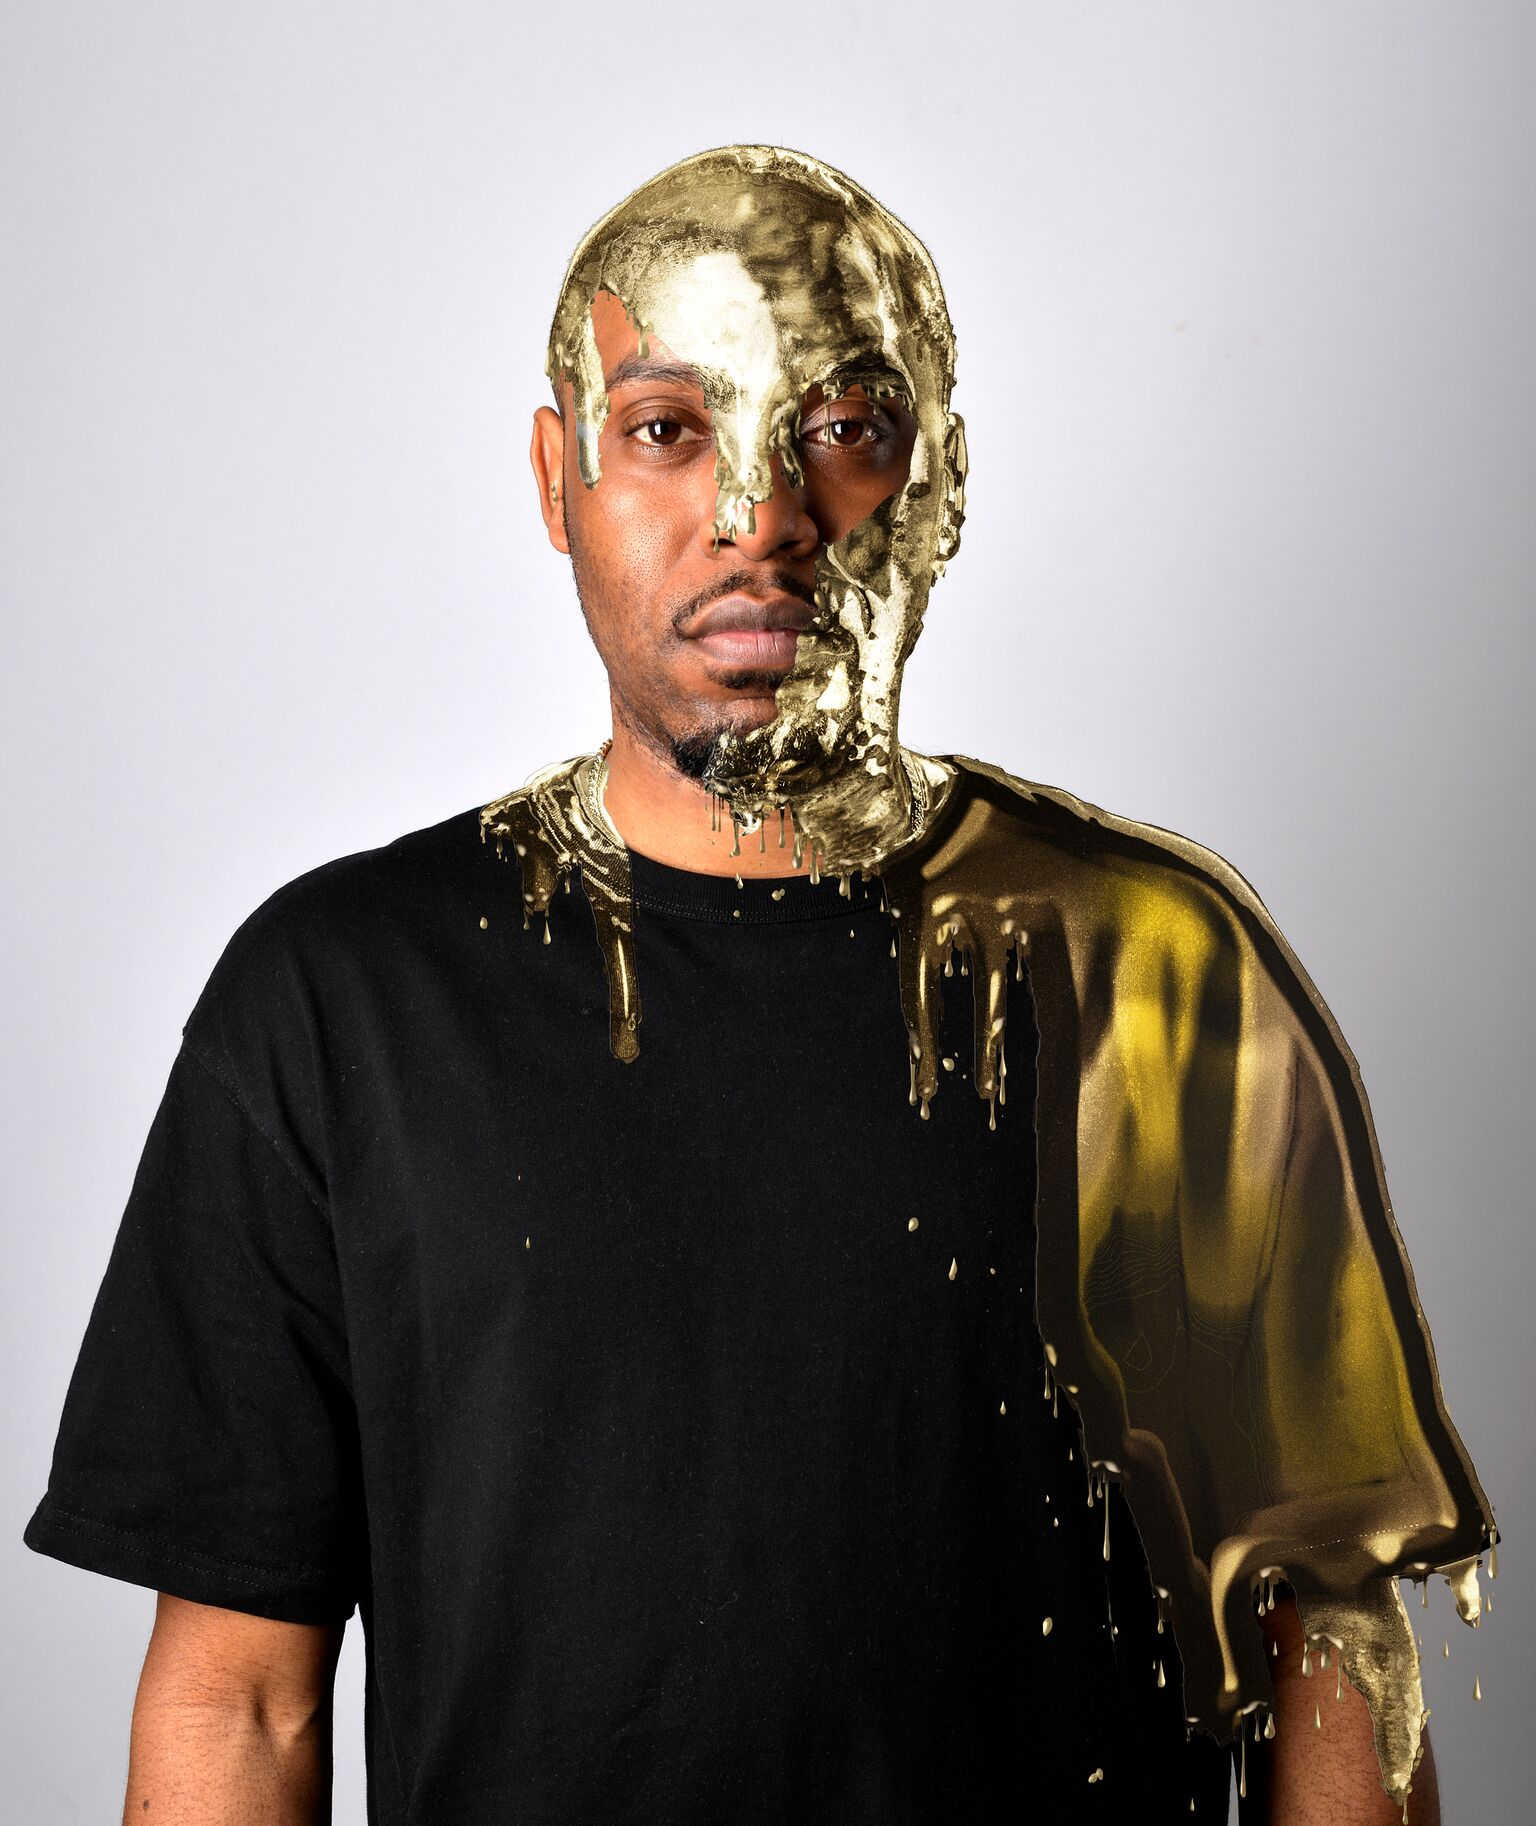 Dane Baptiste - G.O.D. (Gold. Oil. Drugs.)